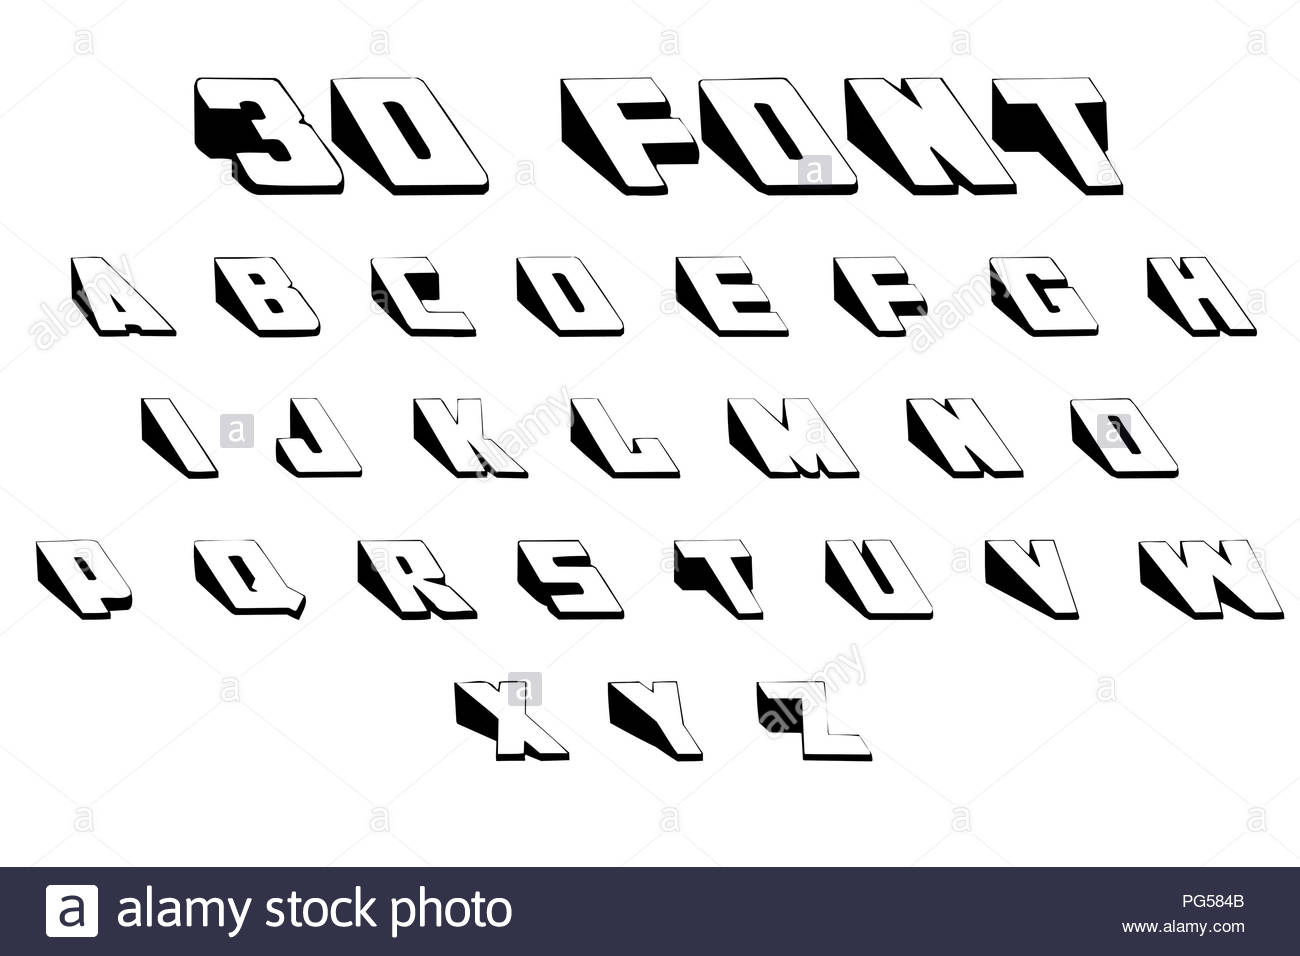 3d Font Alphabet Stock Photo 216475067 Alamy